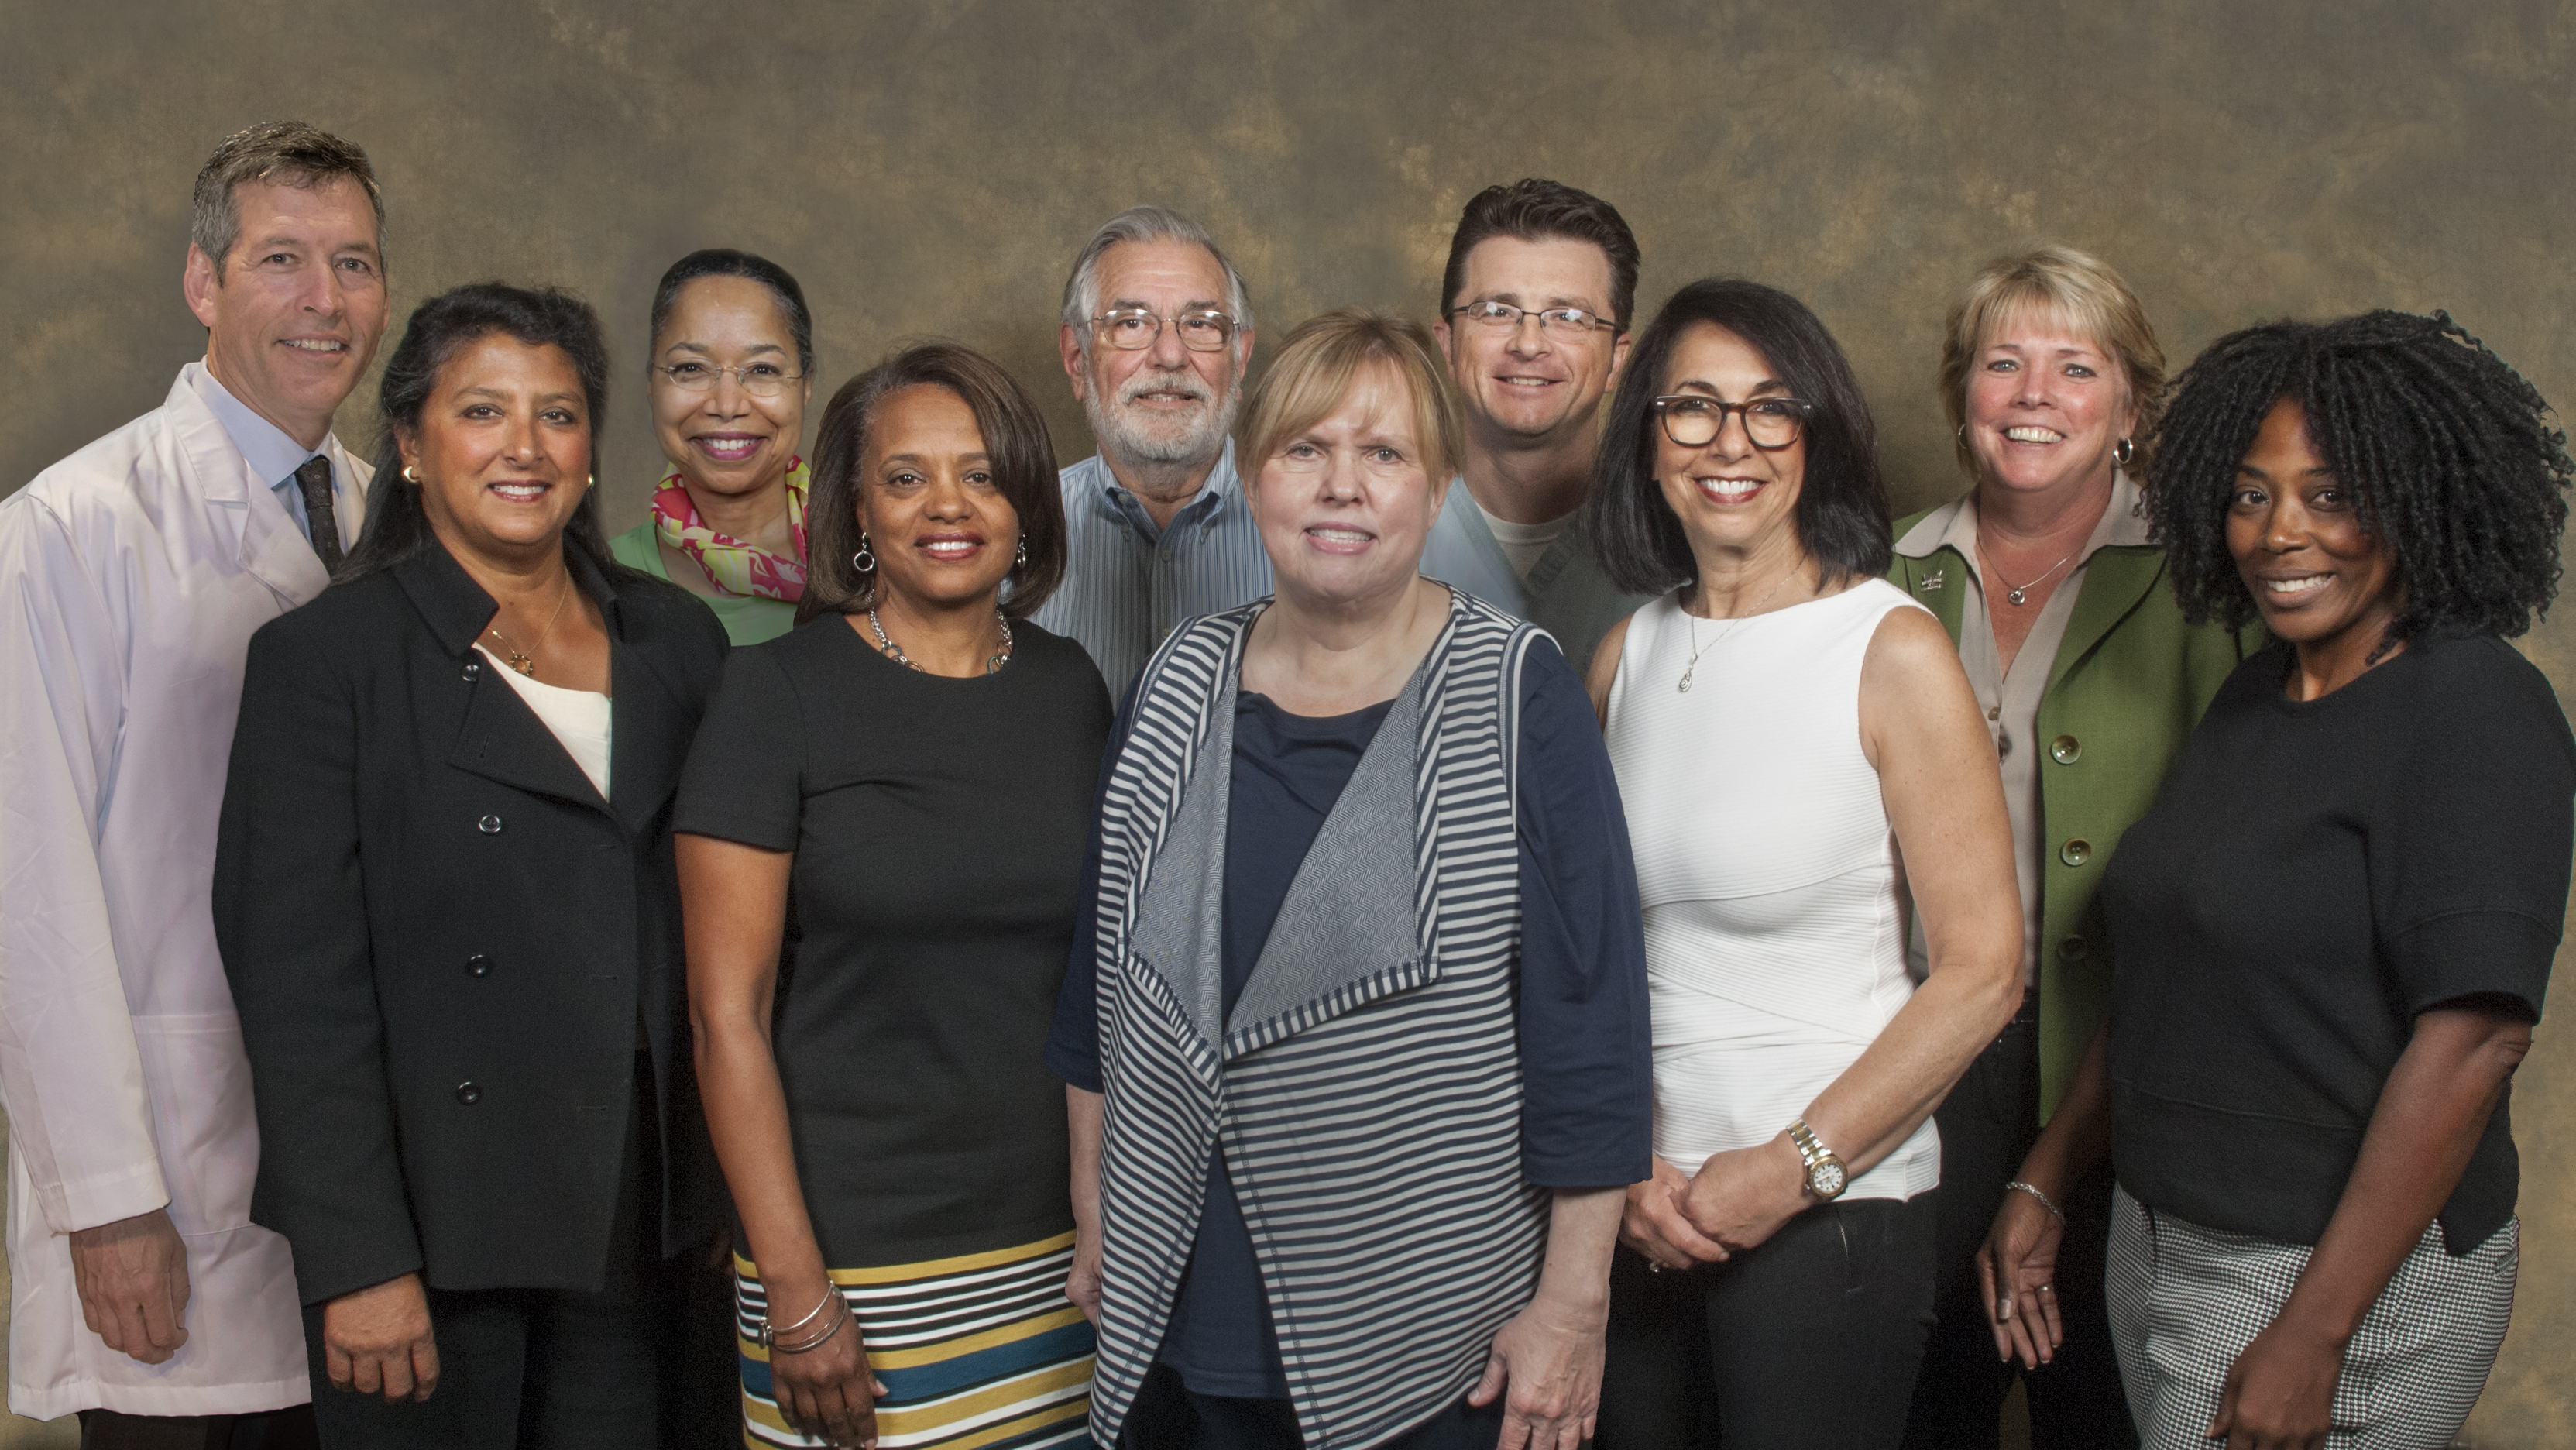 Call for Nominations - Medical Alumni Association Board of Governors